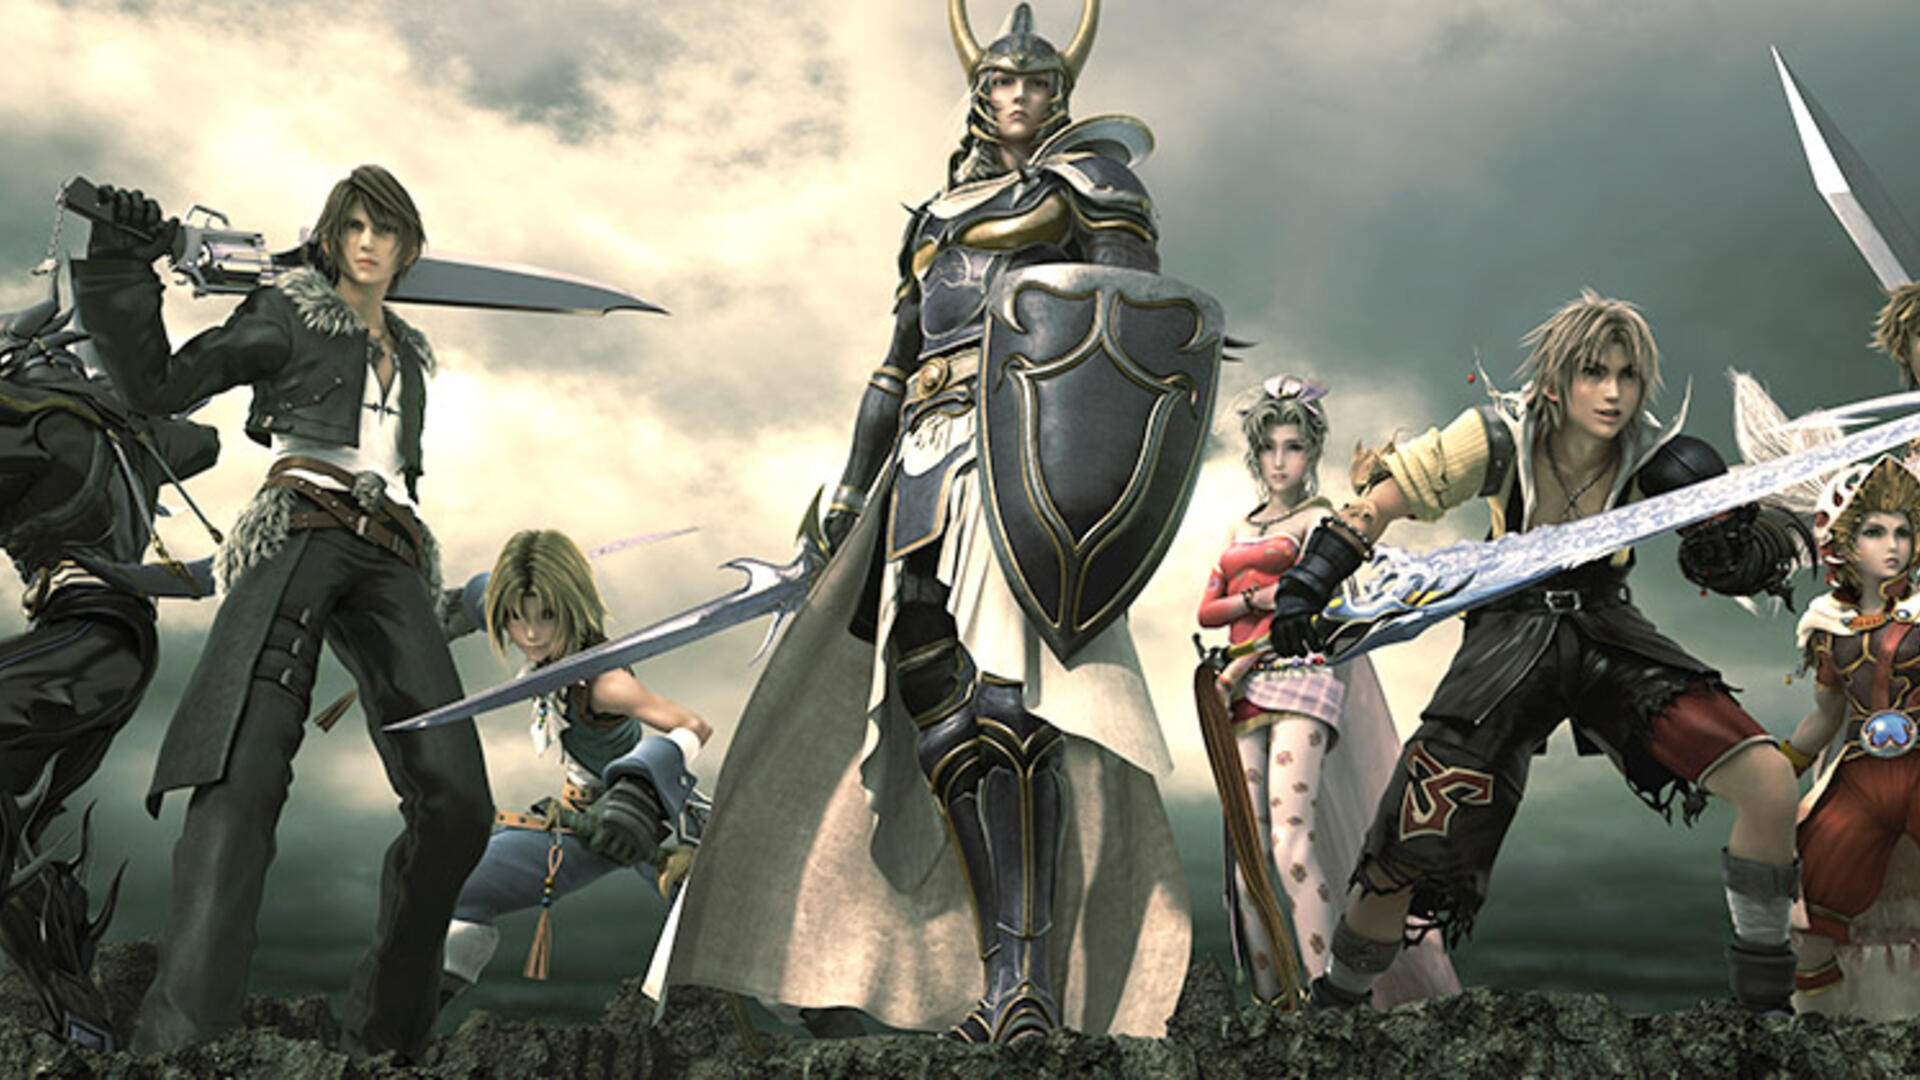 Final Fantasy's Producer Asks: What Makes a Good (or Bad) English Localization?